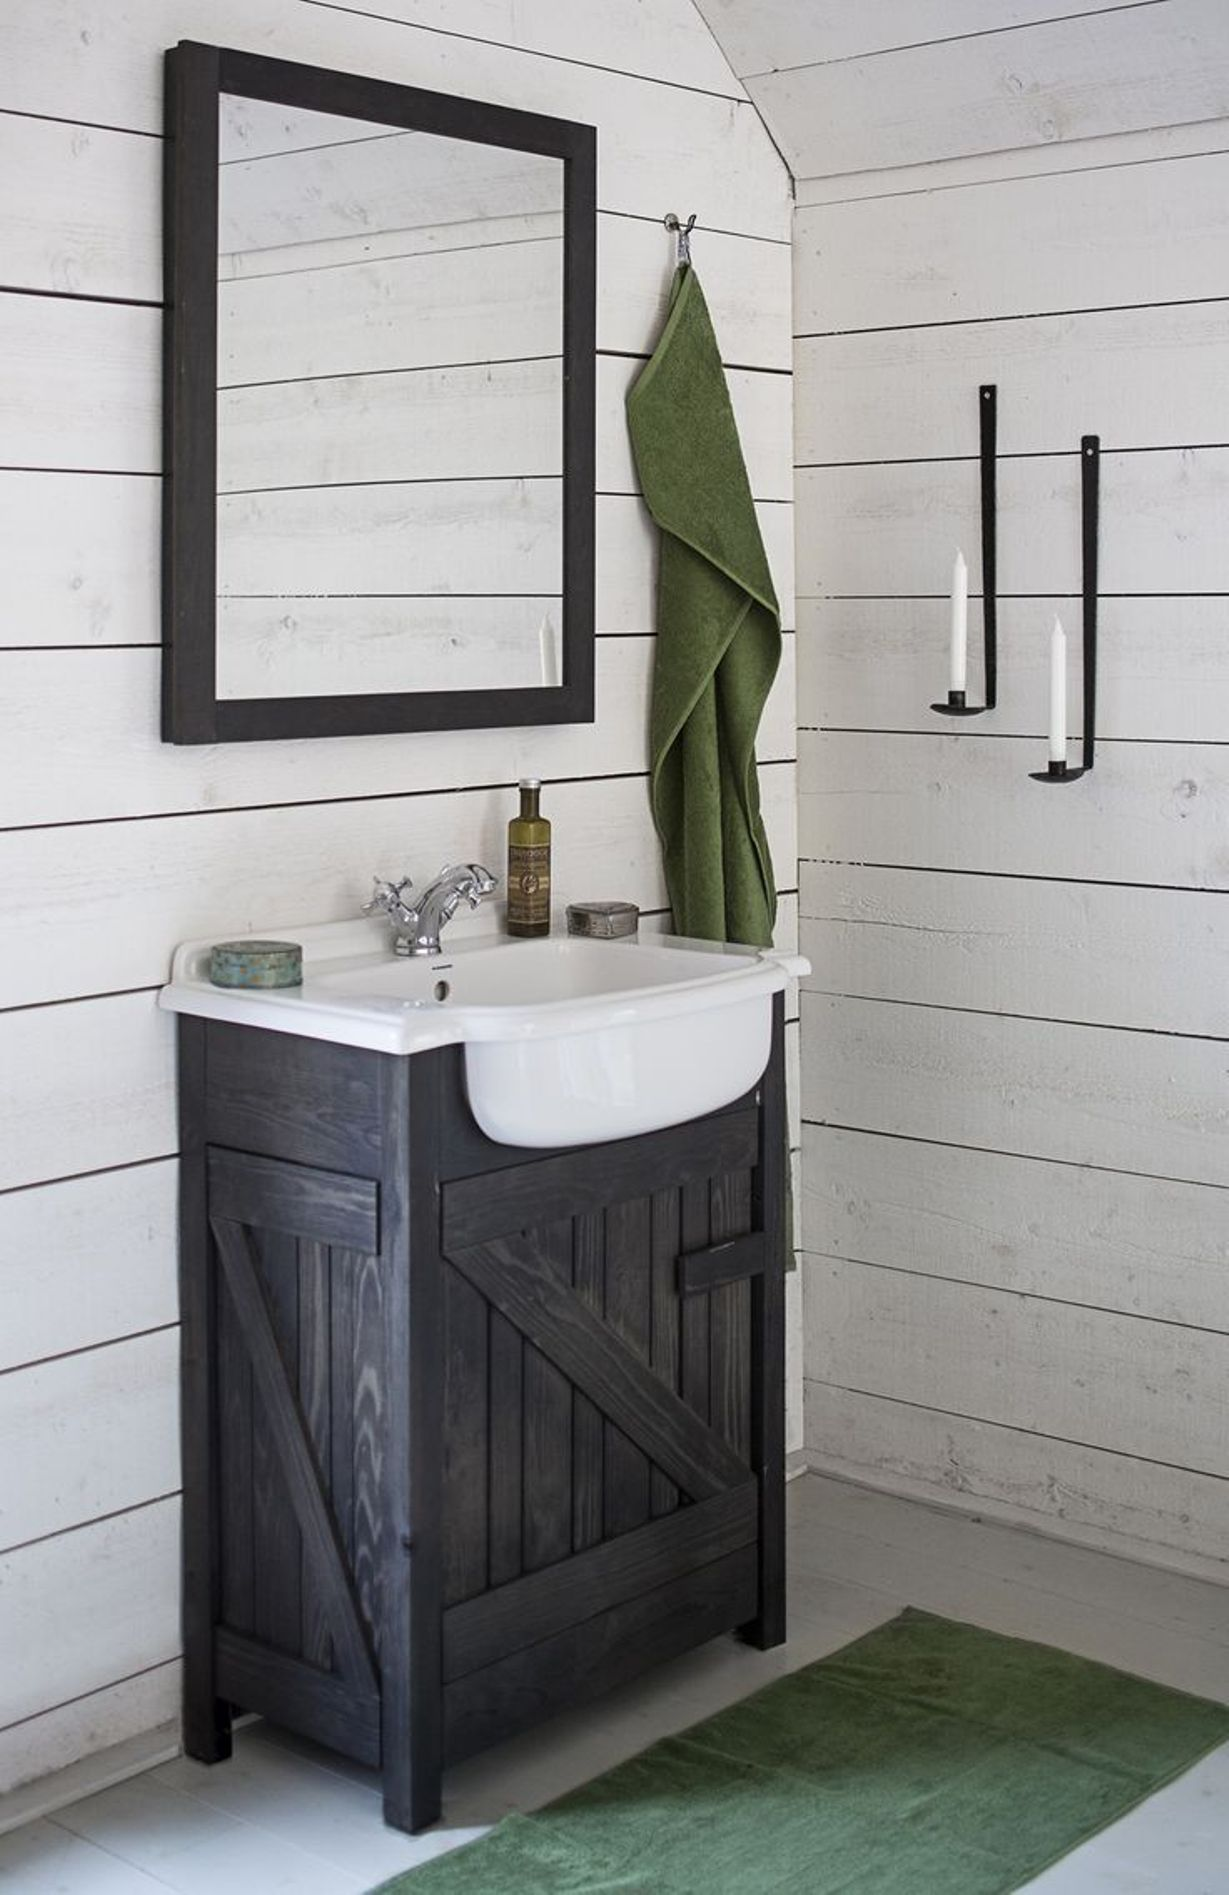 log lights gorgeous then bathroom lighting photo inspiration rustic vanities cabin vanity